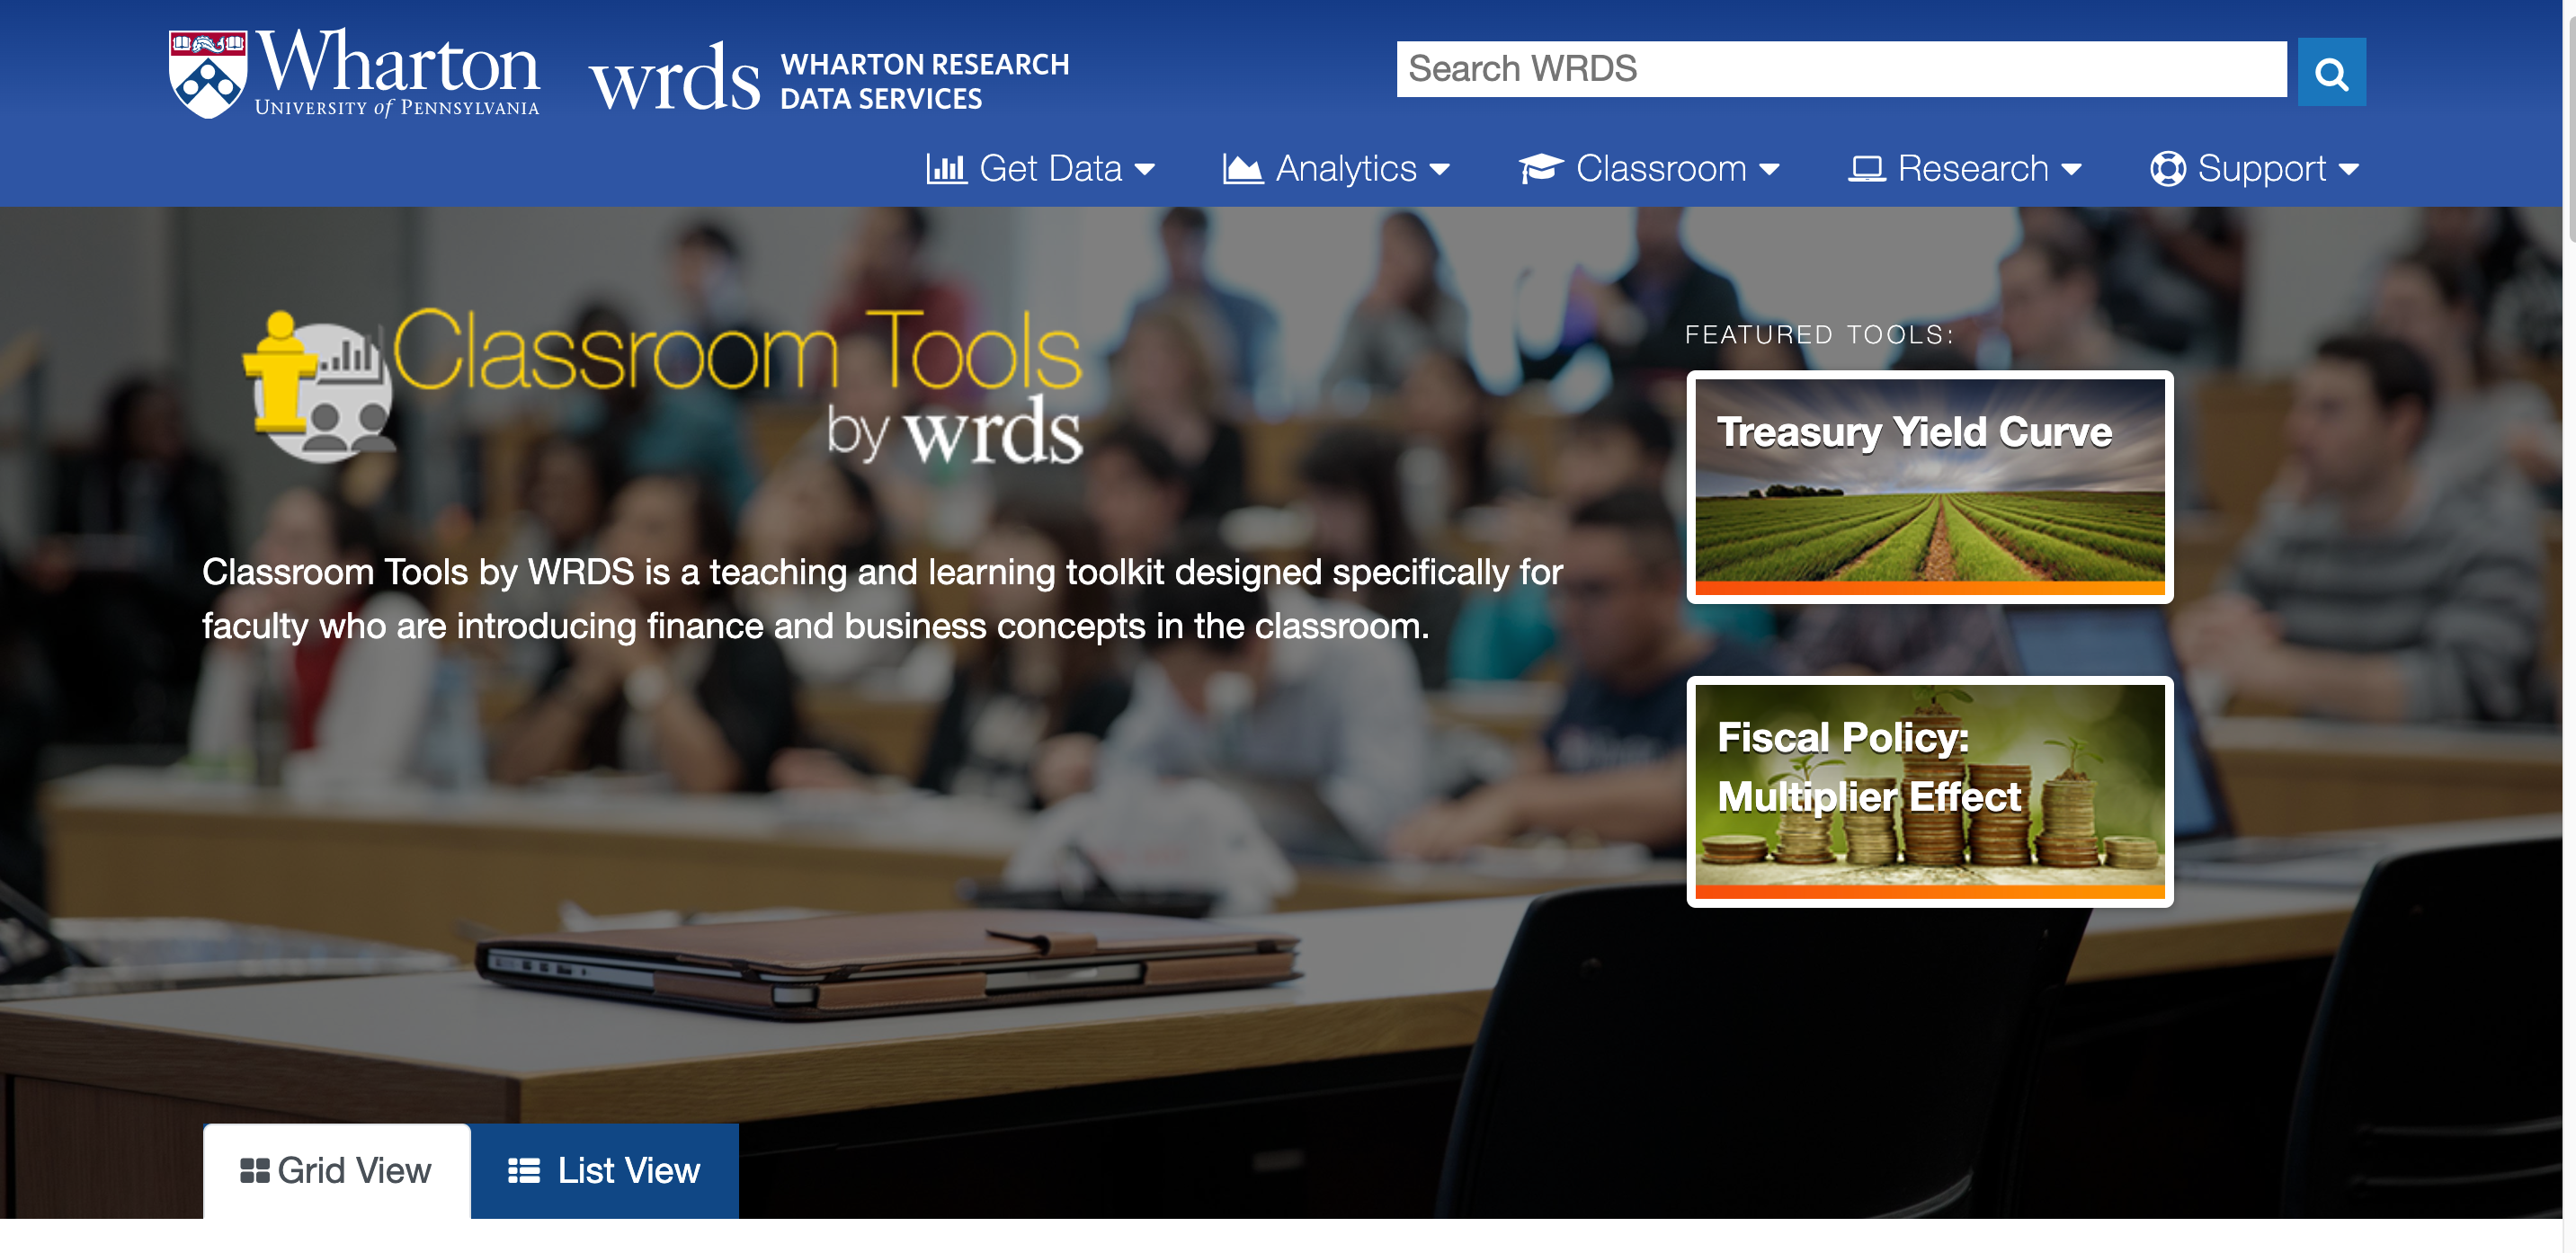 Classroom Tools by WRDS is a teaching and learning toolkit designed specifically for faculty who are introducing finance and business concepts in the classroom.